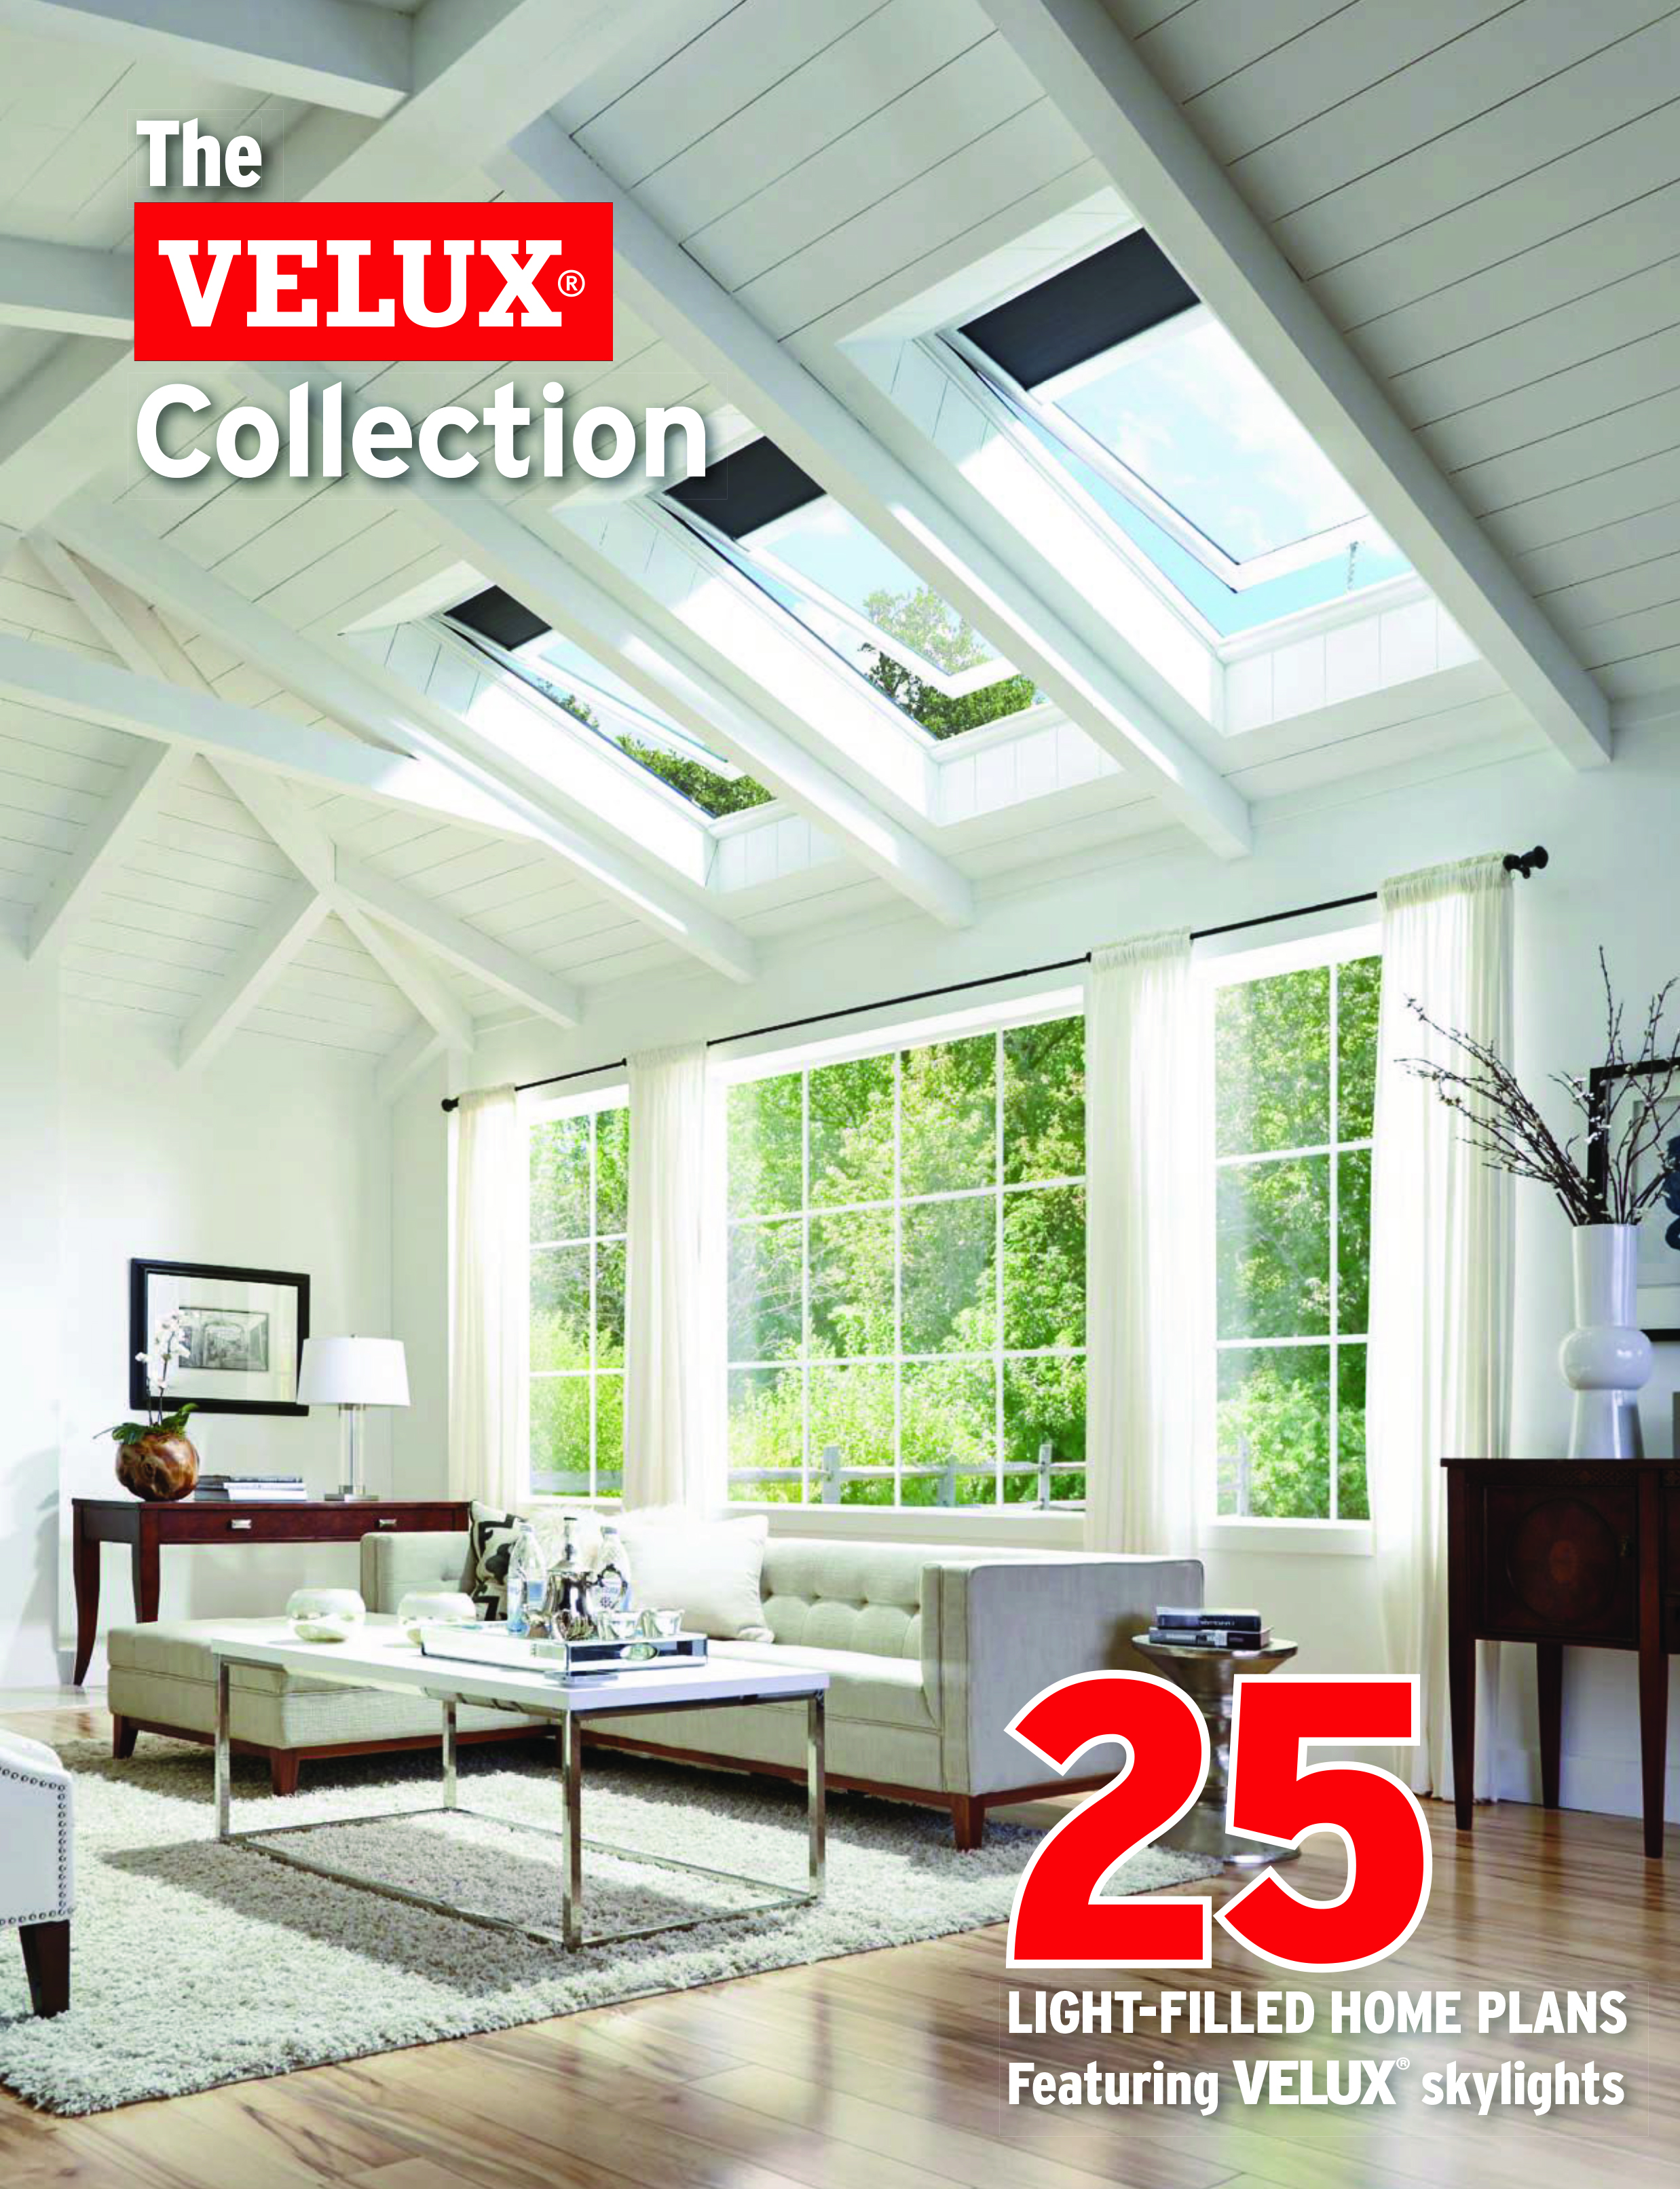 Velux Outdoor Living Integrity Small Outdoor Living The Velux Collection  Small Home Plans Designs Magazine ...